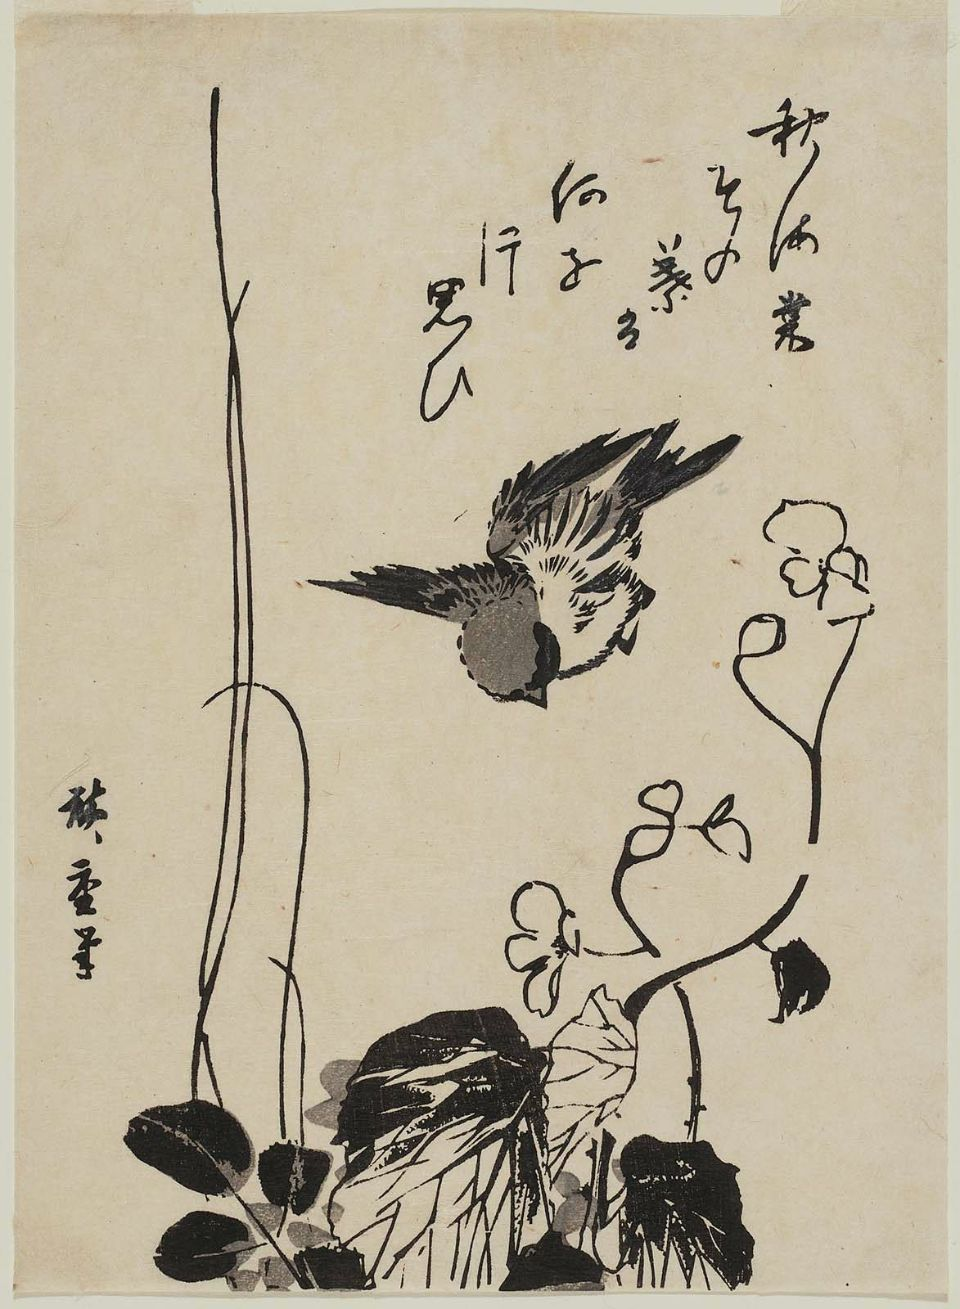 Black and White: Hiroshige's Birds and Branches